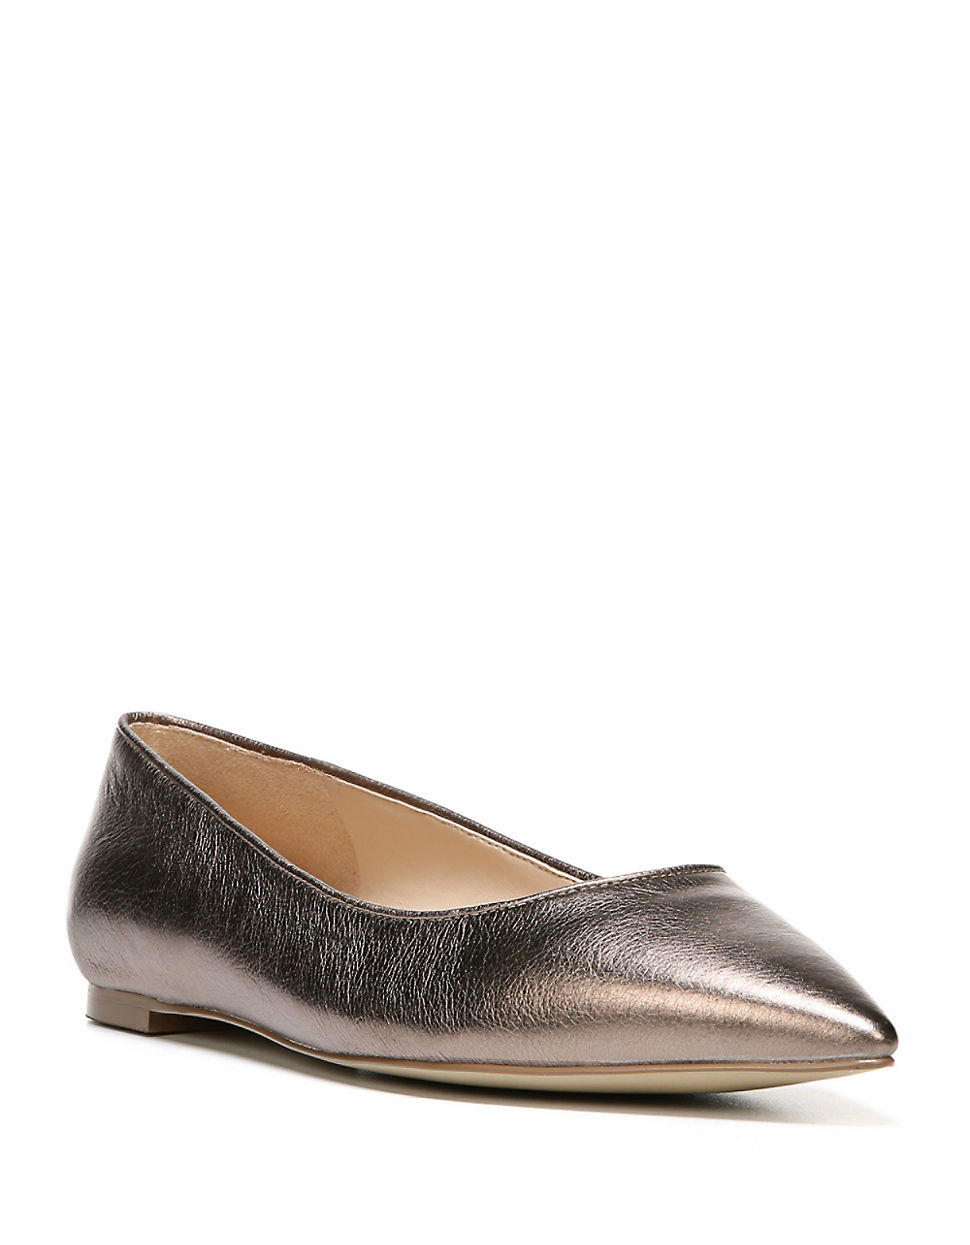 Pewter Ballet Flats Shoes